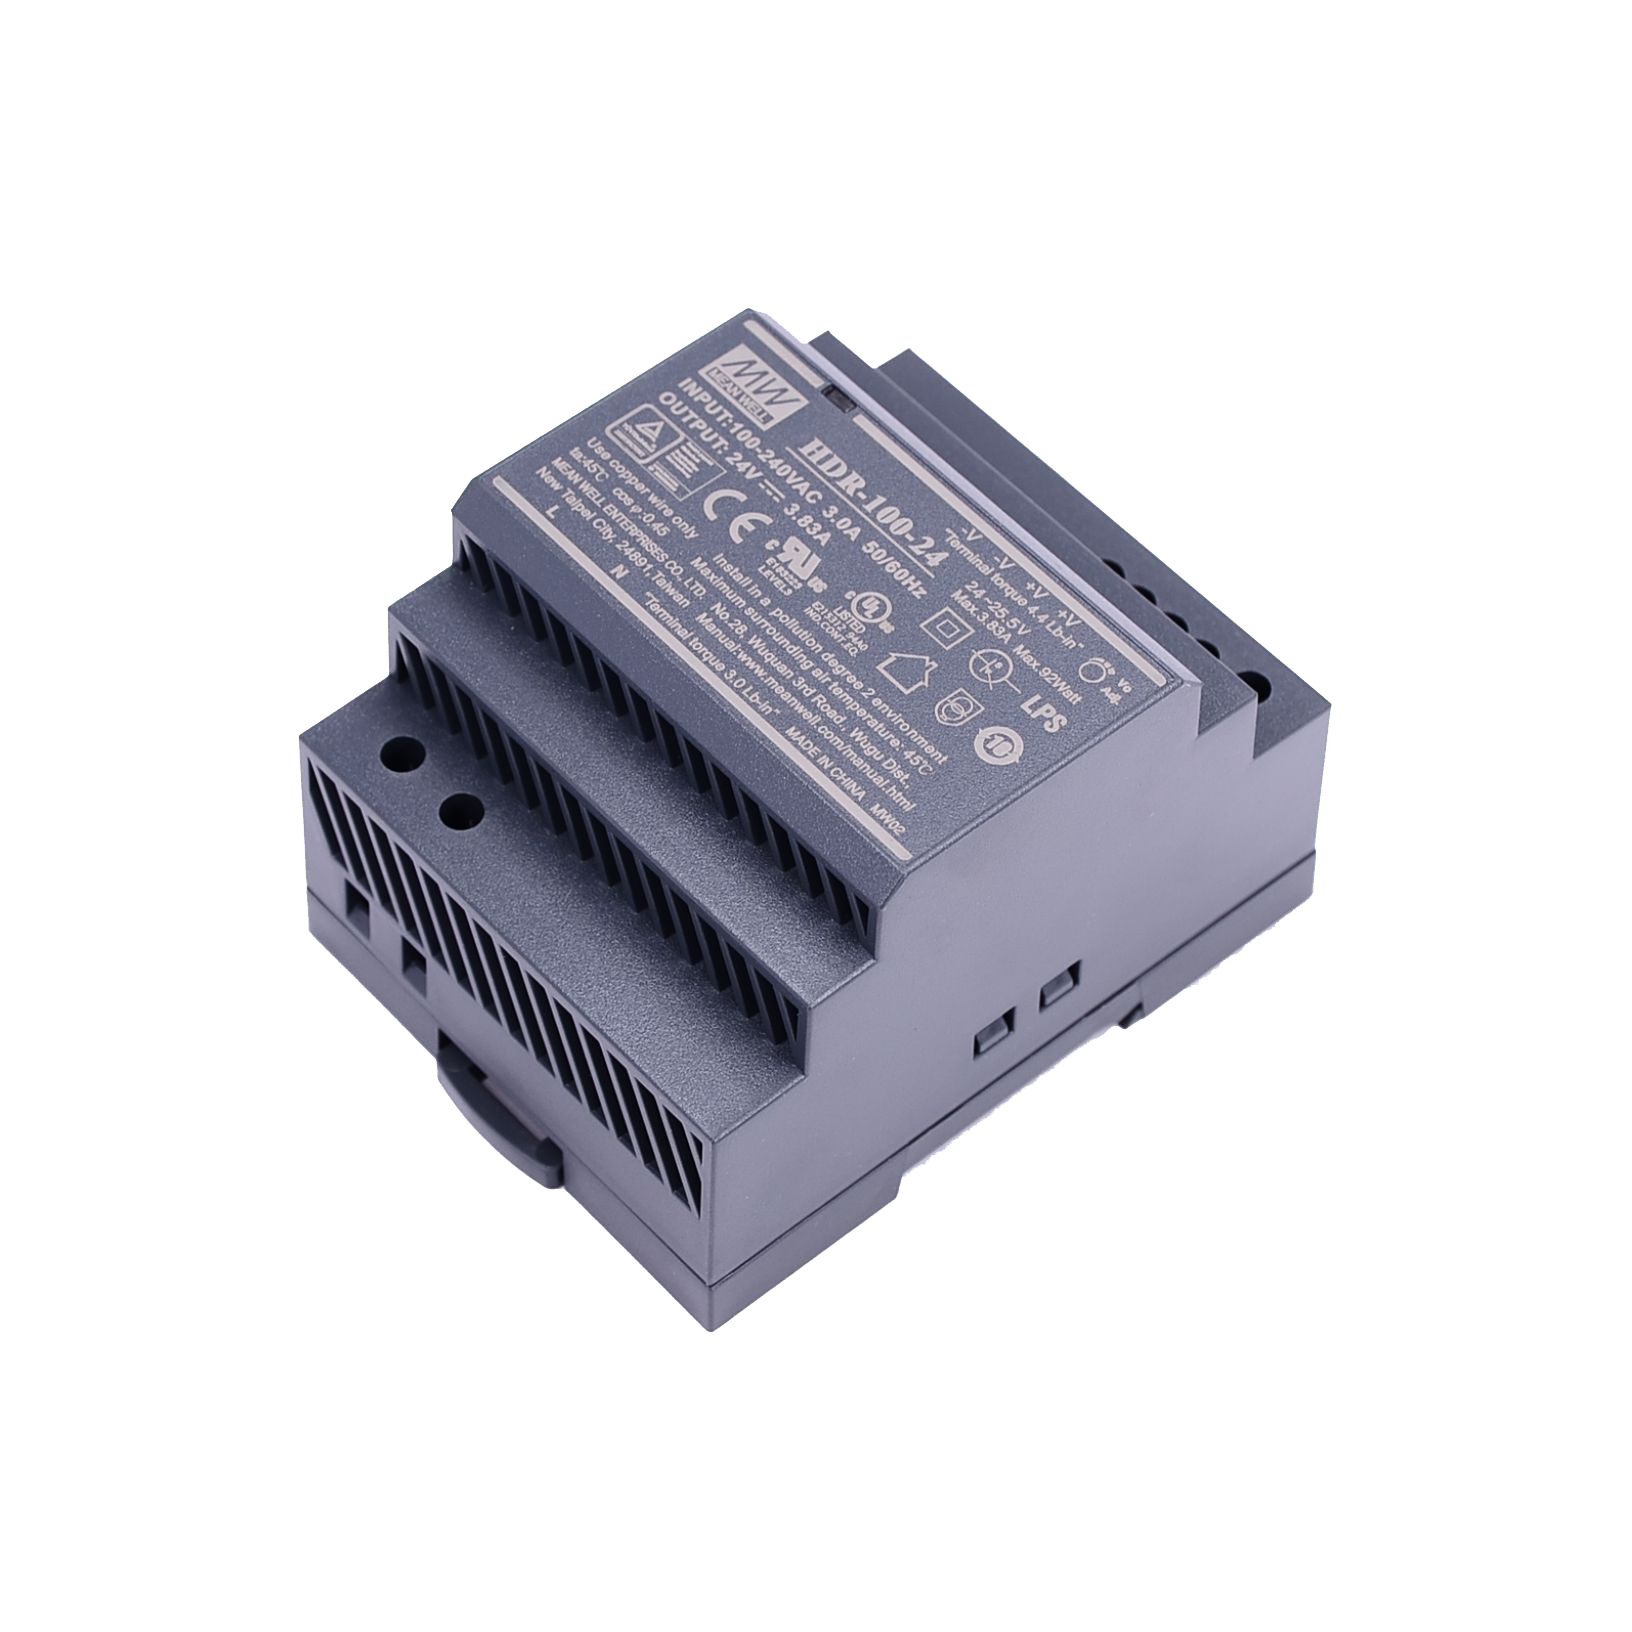 Original Mean Well HDR-15 30 60 100 150 series DC 5V 12V 15V 24V 48V meanwell Ultra Slim Step Shape DIN Rail Power Supply-4